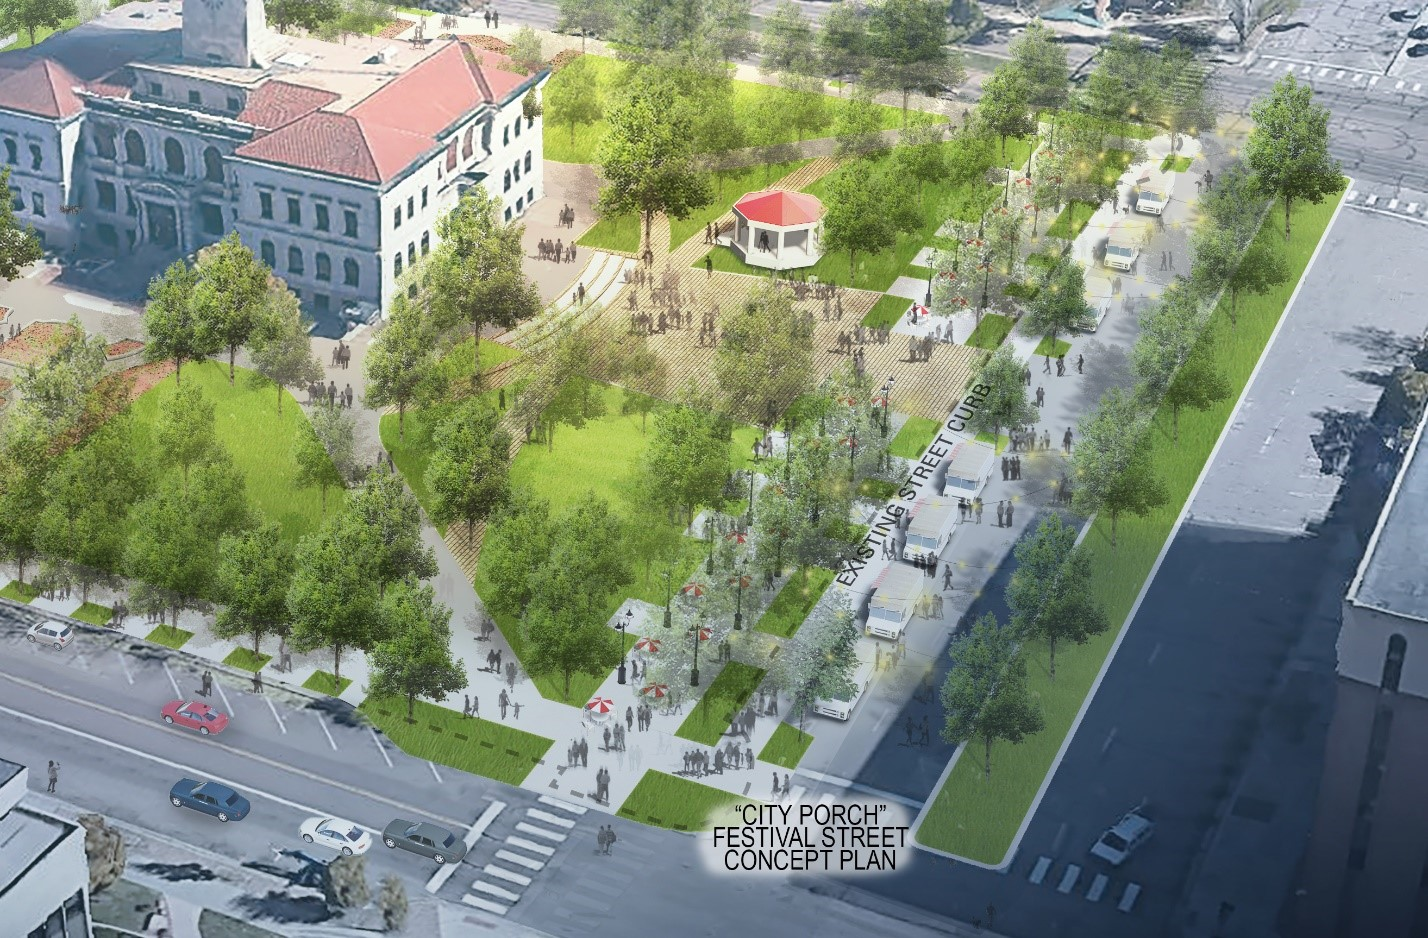 The Colorado Springs Downtown Parks Master Plan designed Alamo Park to overtake one row of on-street parking and a travel lane to create a pedestrian promenade and festival street, providing infrastructure for market and event booths, outdoor dining, and food truck stalls. Source: Design Workshop